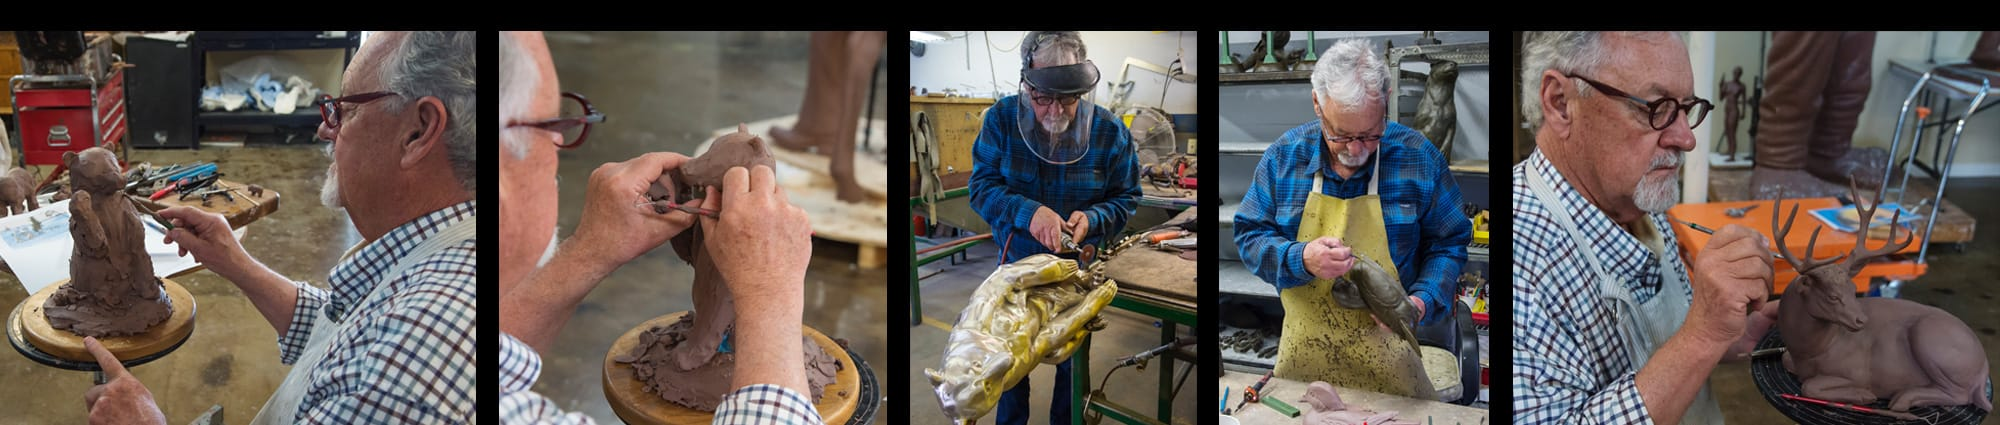 Pictures of Thomas D. Mangelsen sculpting